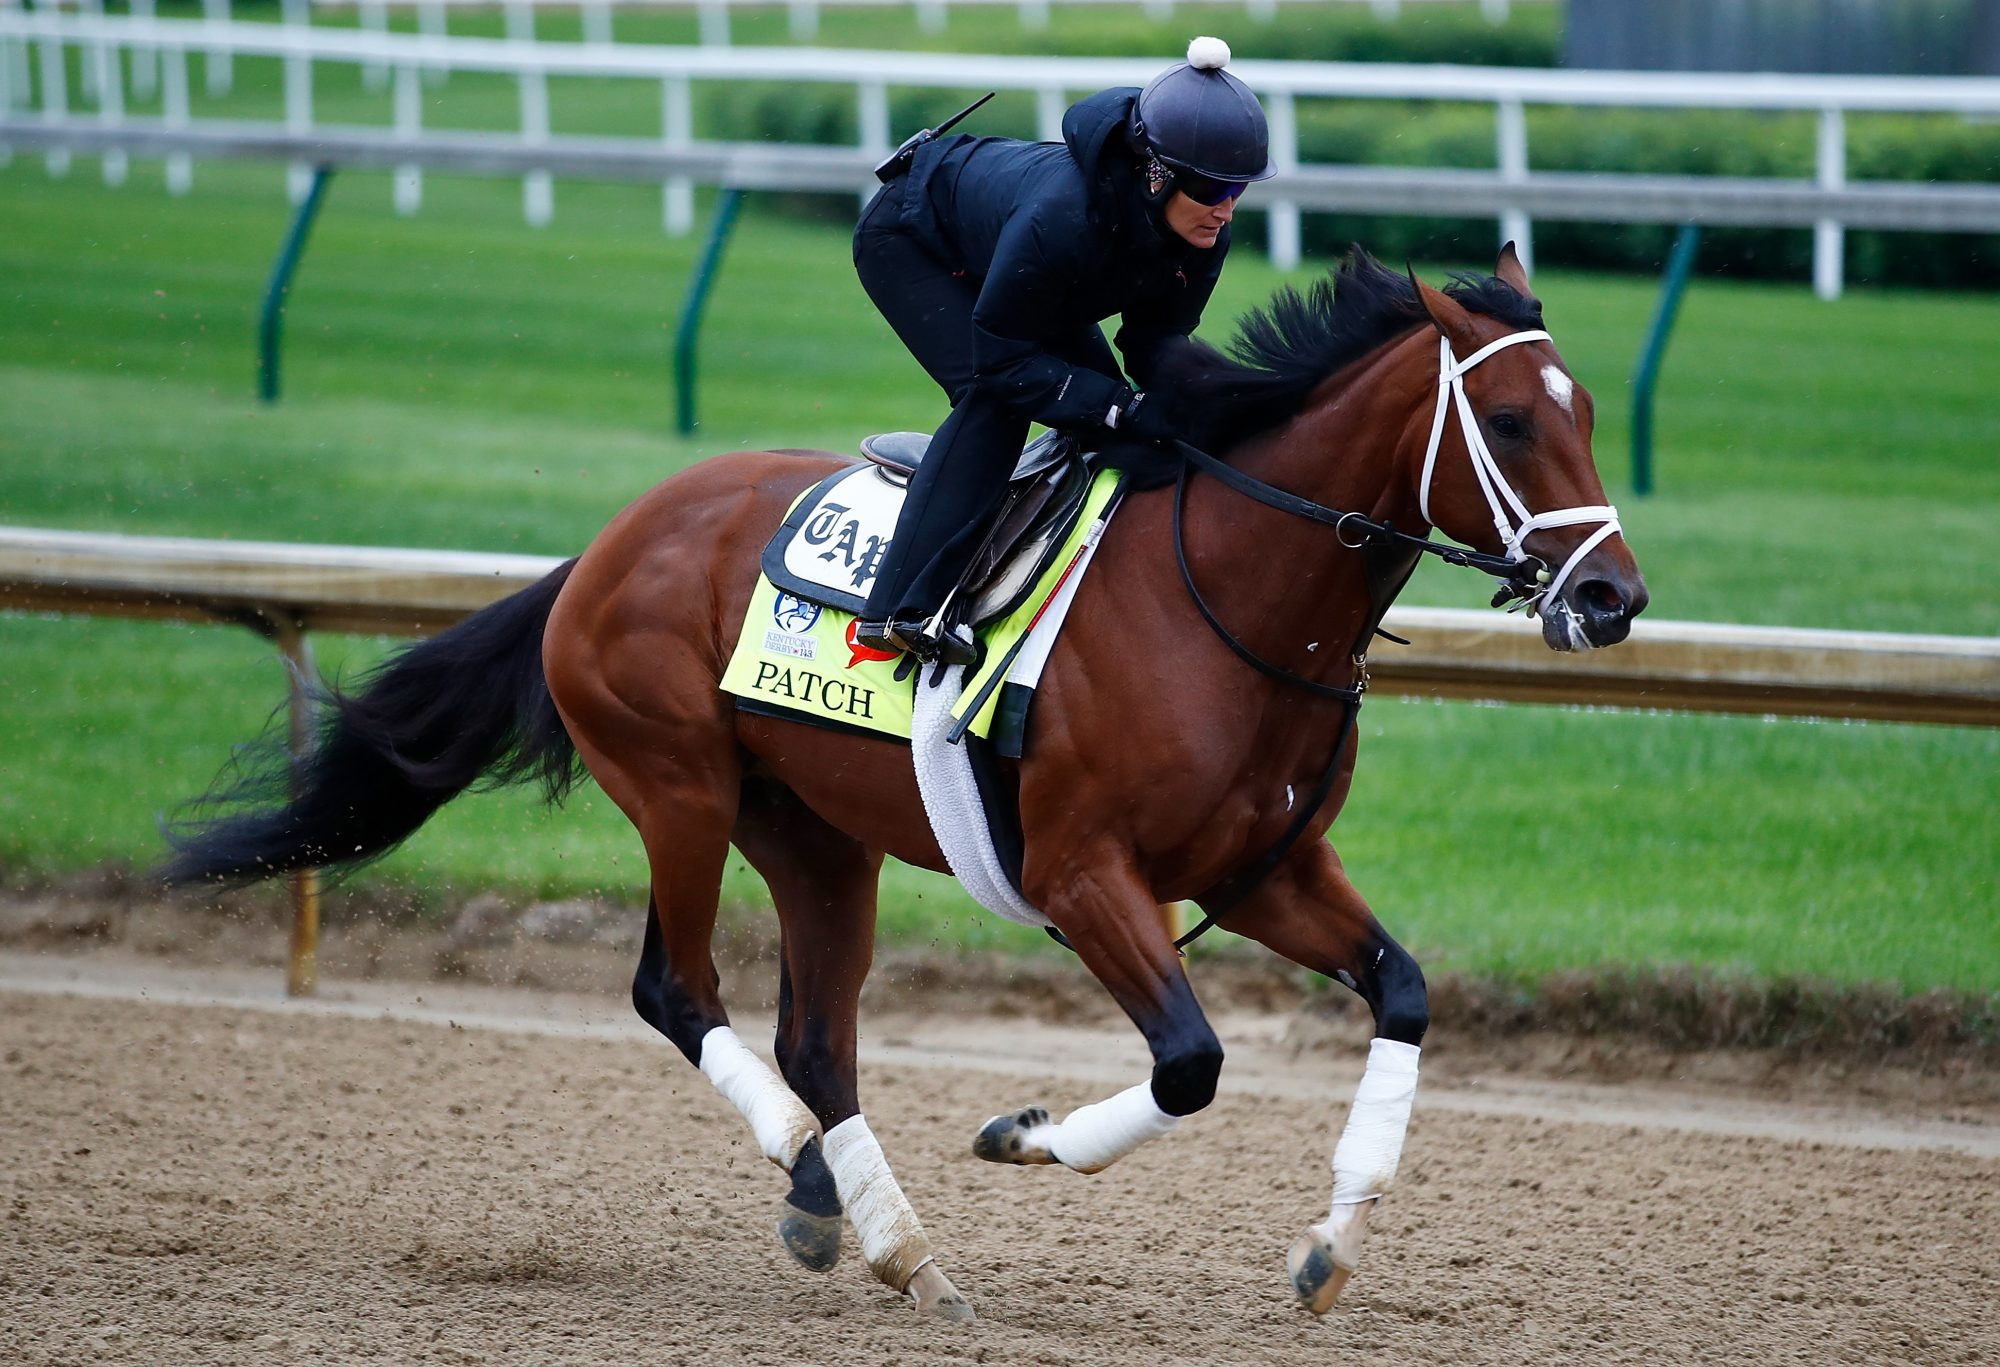 Patch Competing in Kentucky Derby